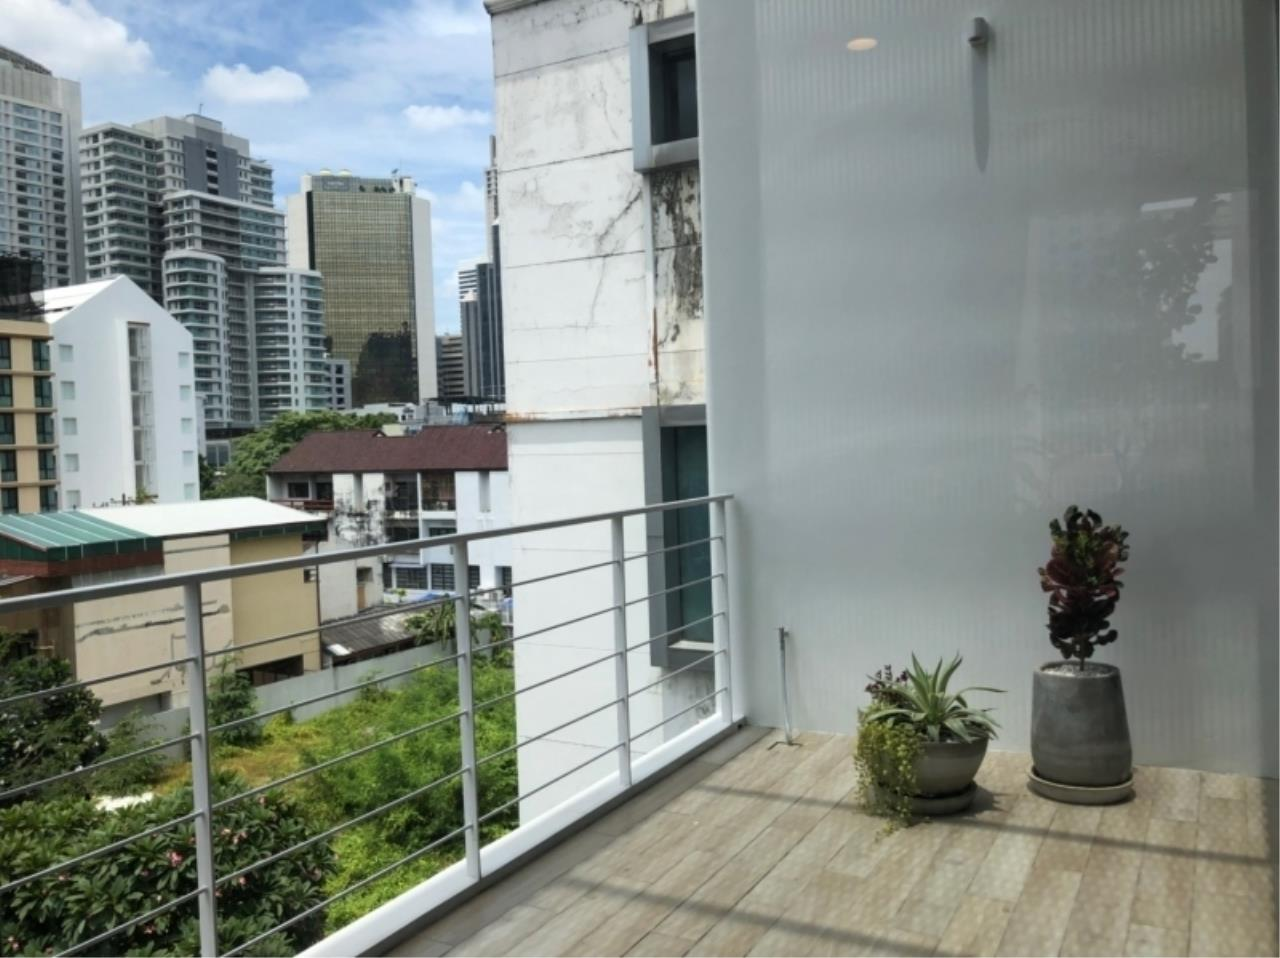 Century21 Skylux Agency's 33 Serviced Apartment / Apartment (Serviced) For Rent / 2 Bedroom / 120 SQM / BTS Asok / Bangkok 10